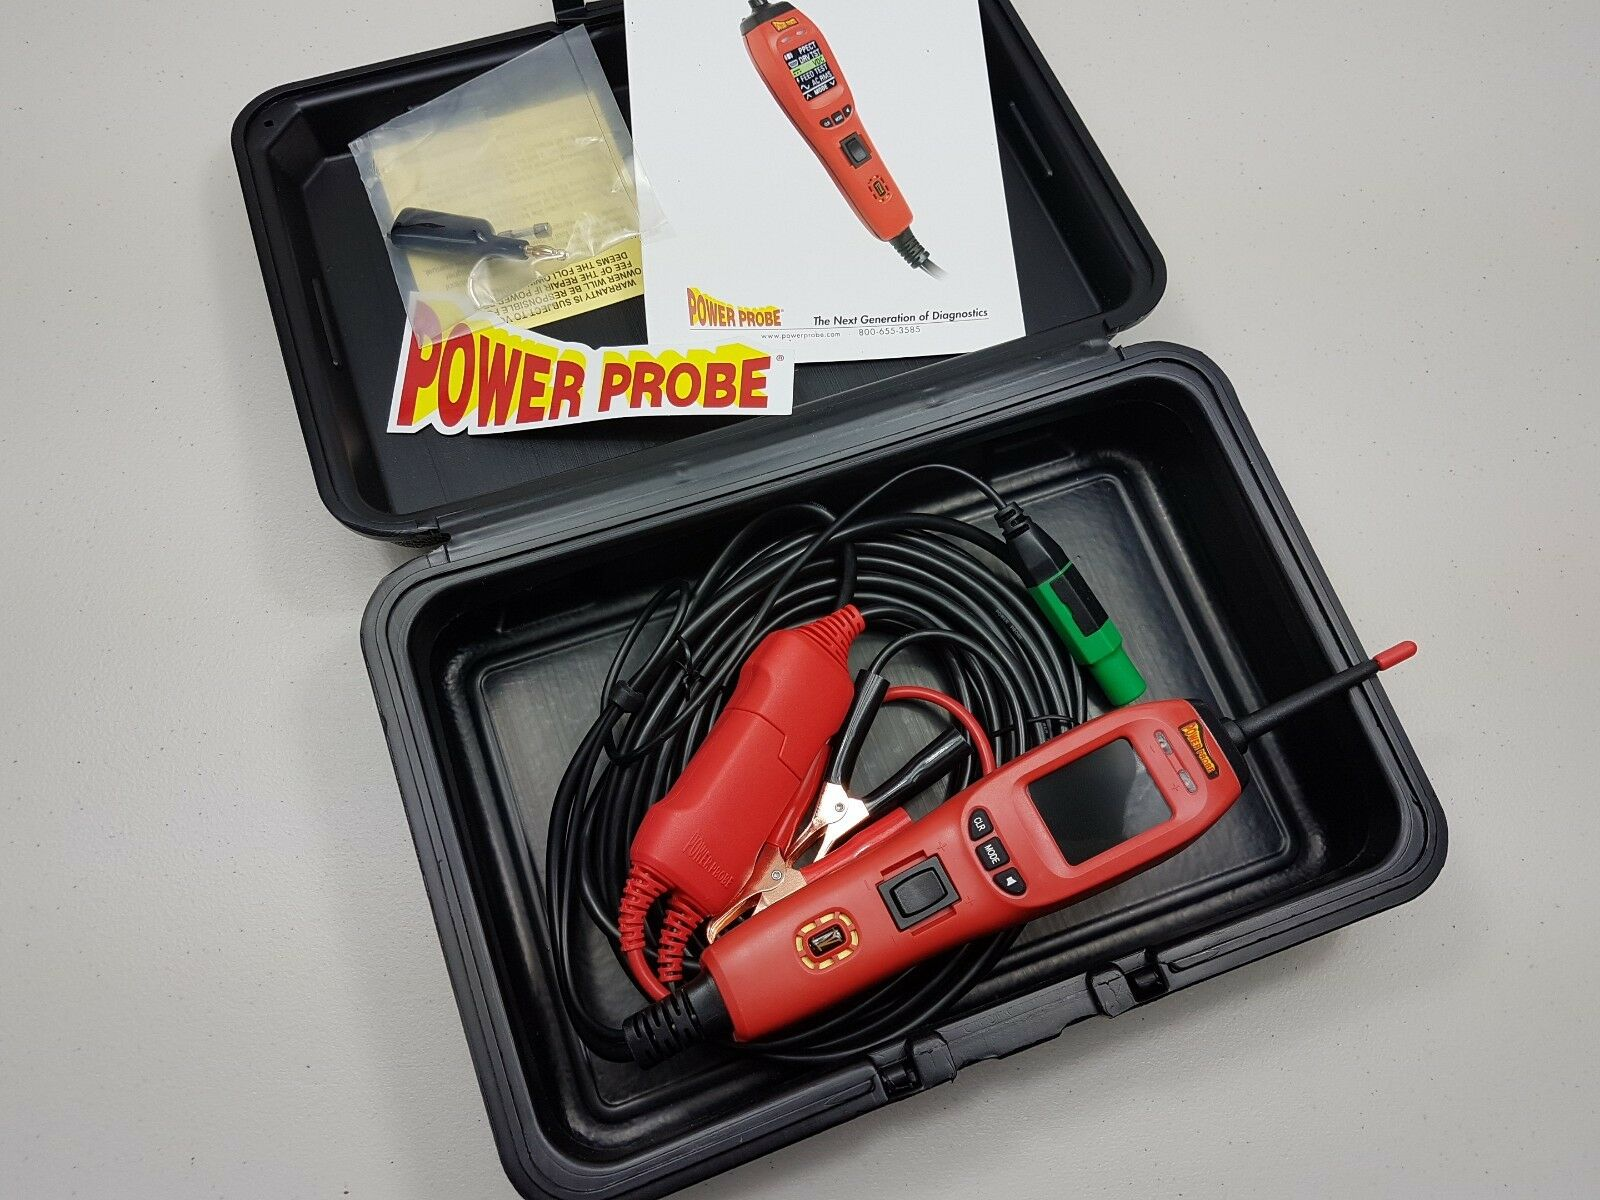 Power Probe 4 Circuit Tester Powerprobe Iv Diagnostic Tool Pp4 Details About Sealey Pp1 Auto 12v Electrical Norton Secured Powered By Verisign